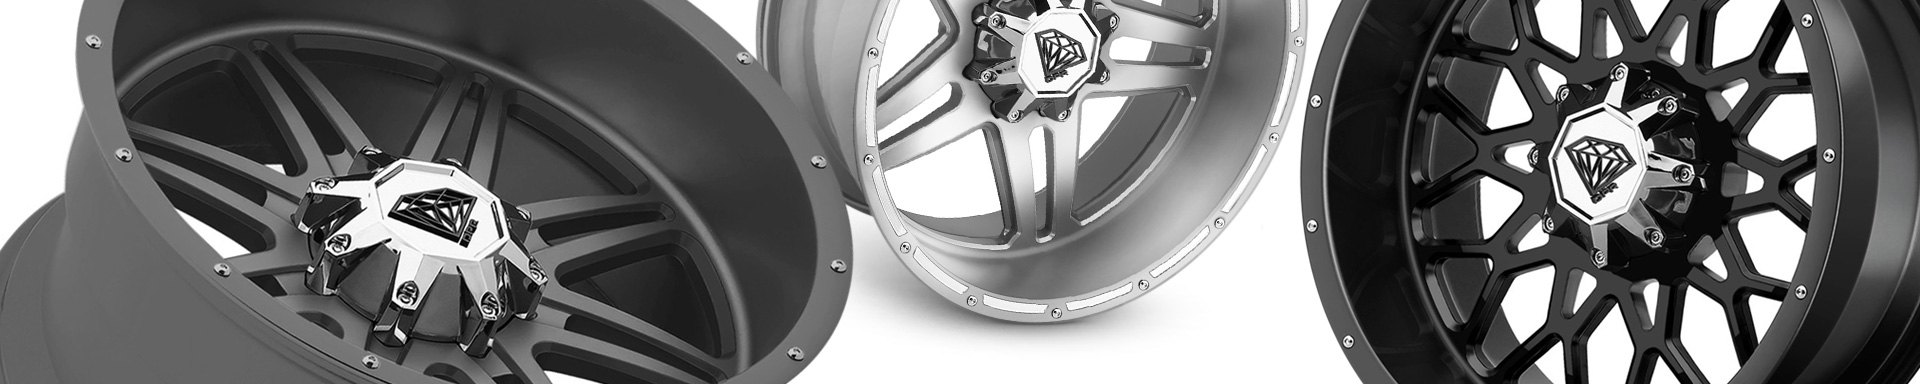 Universal DPR WHEELS & RIMS